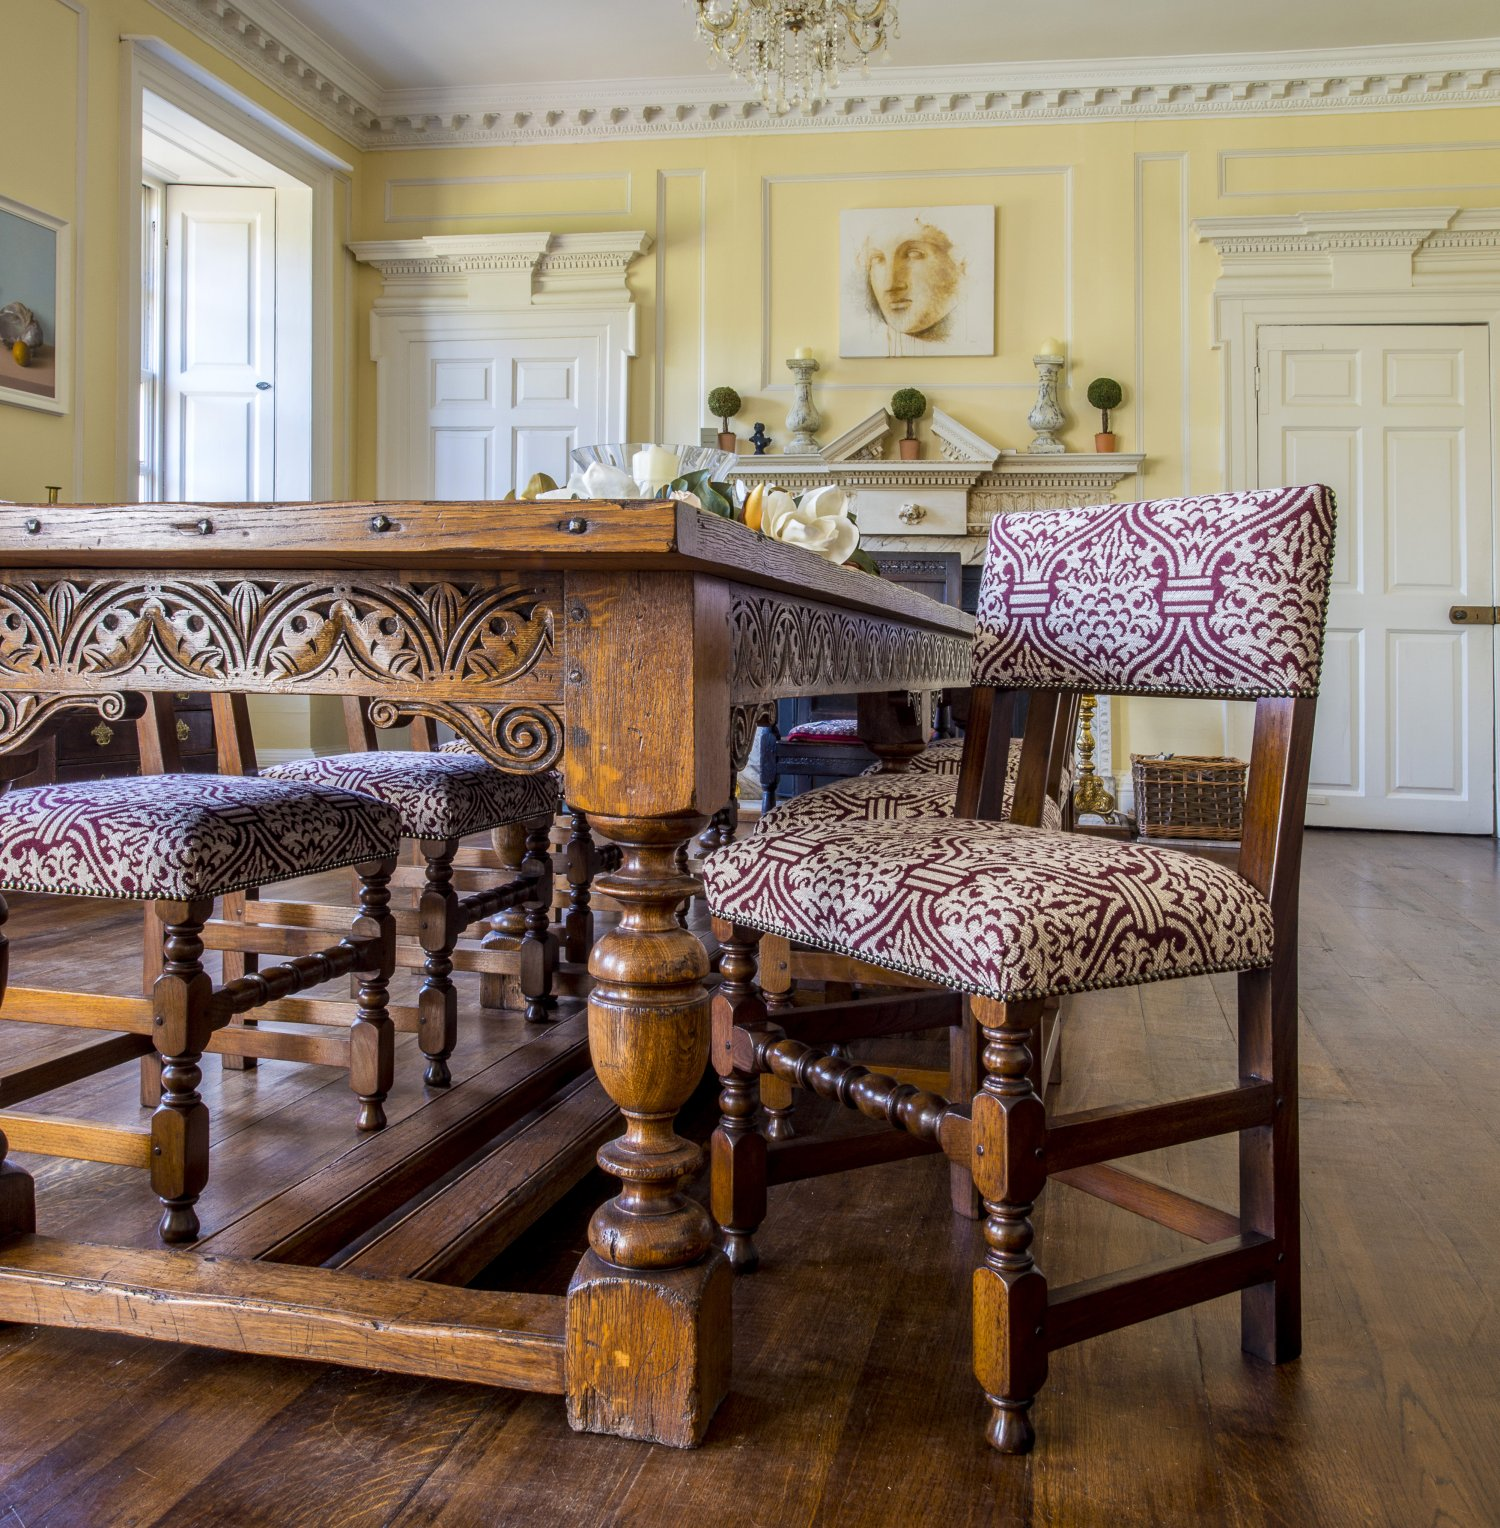 Charles I Oak Dining Table and Backstools in 'Pomegranate' for the Dining Room